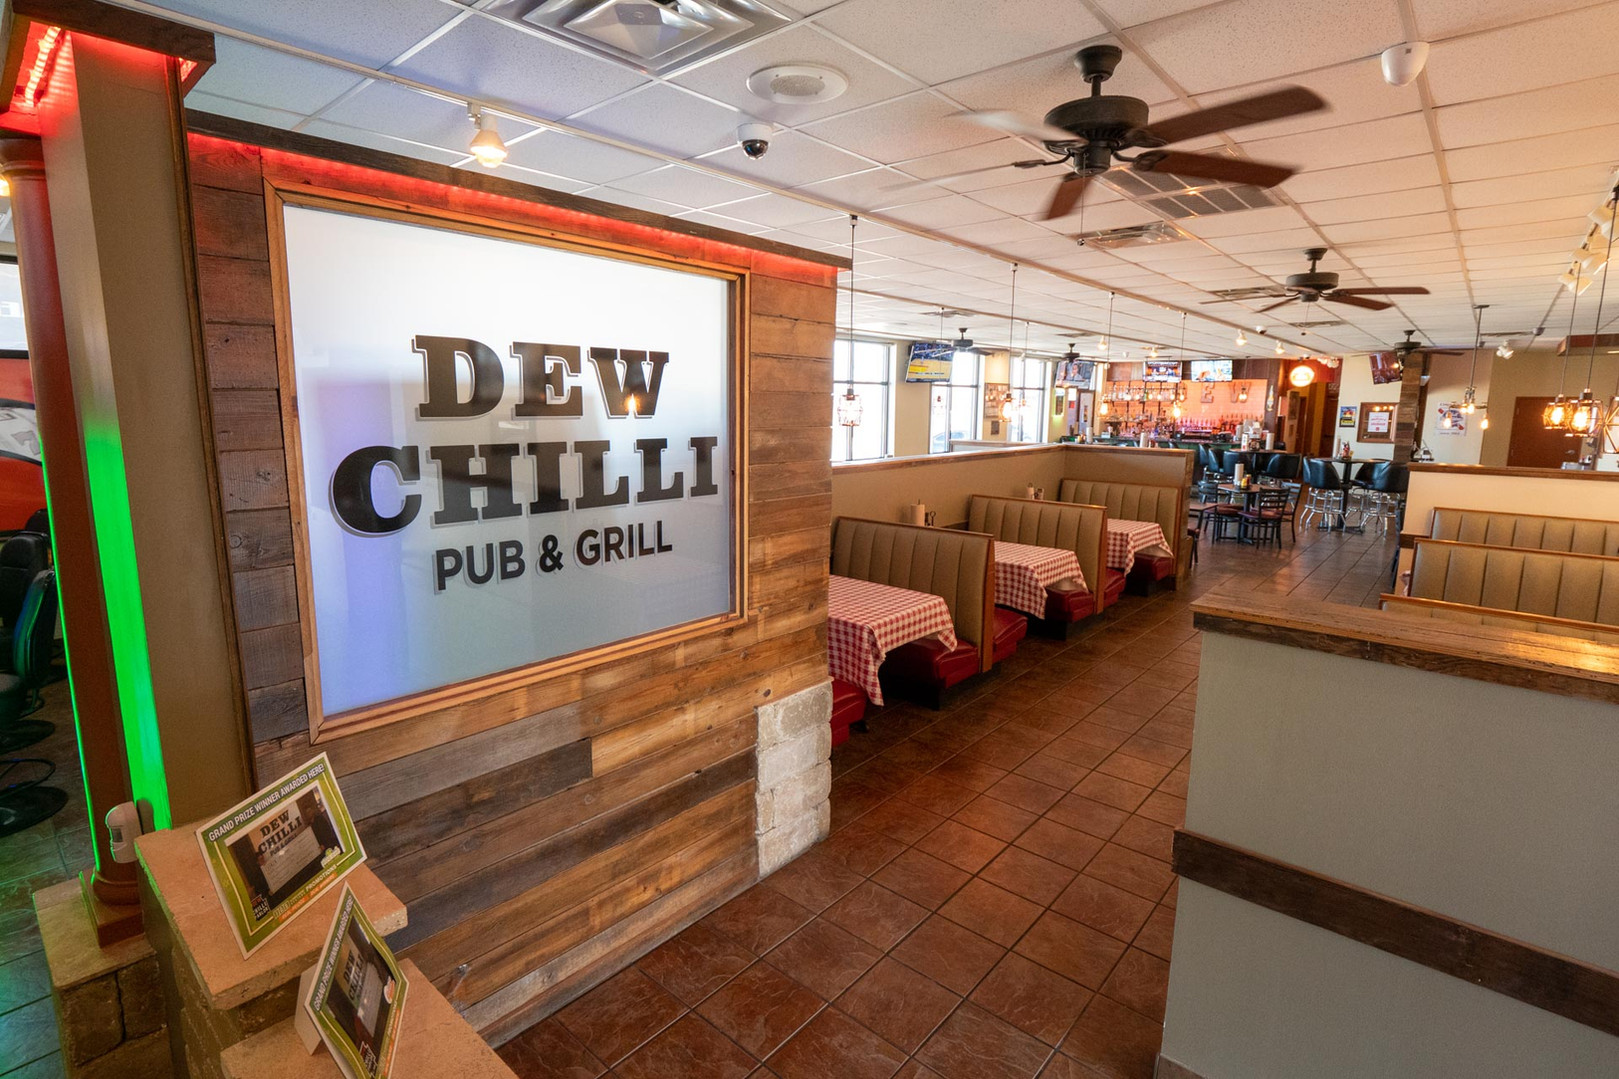 Welcome to DEW Chili on Dirksen in Springfield, IL